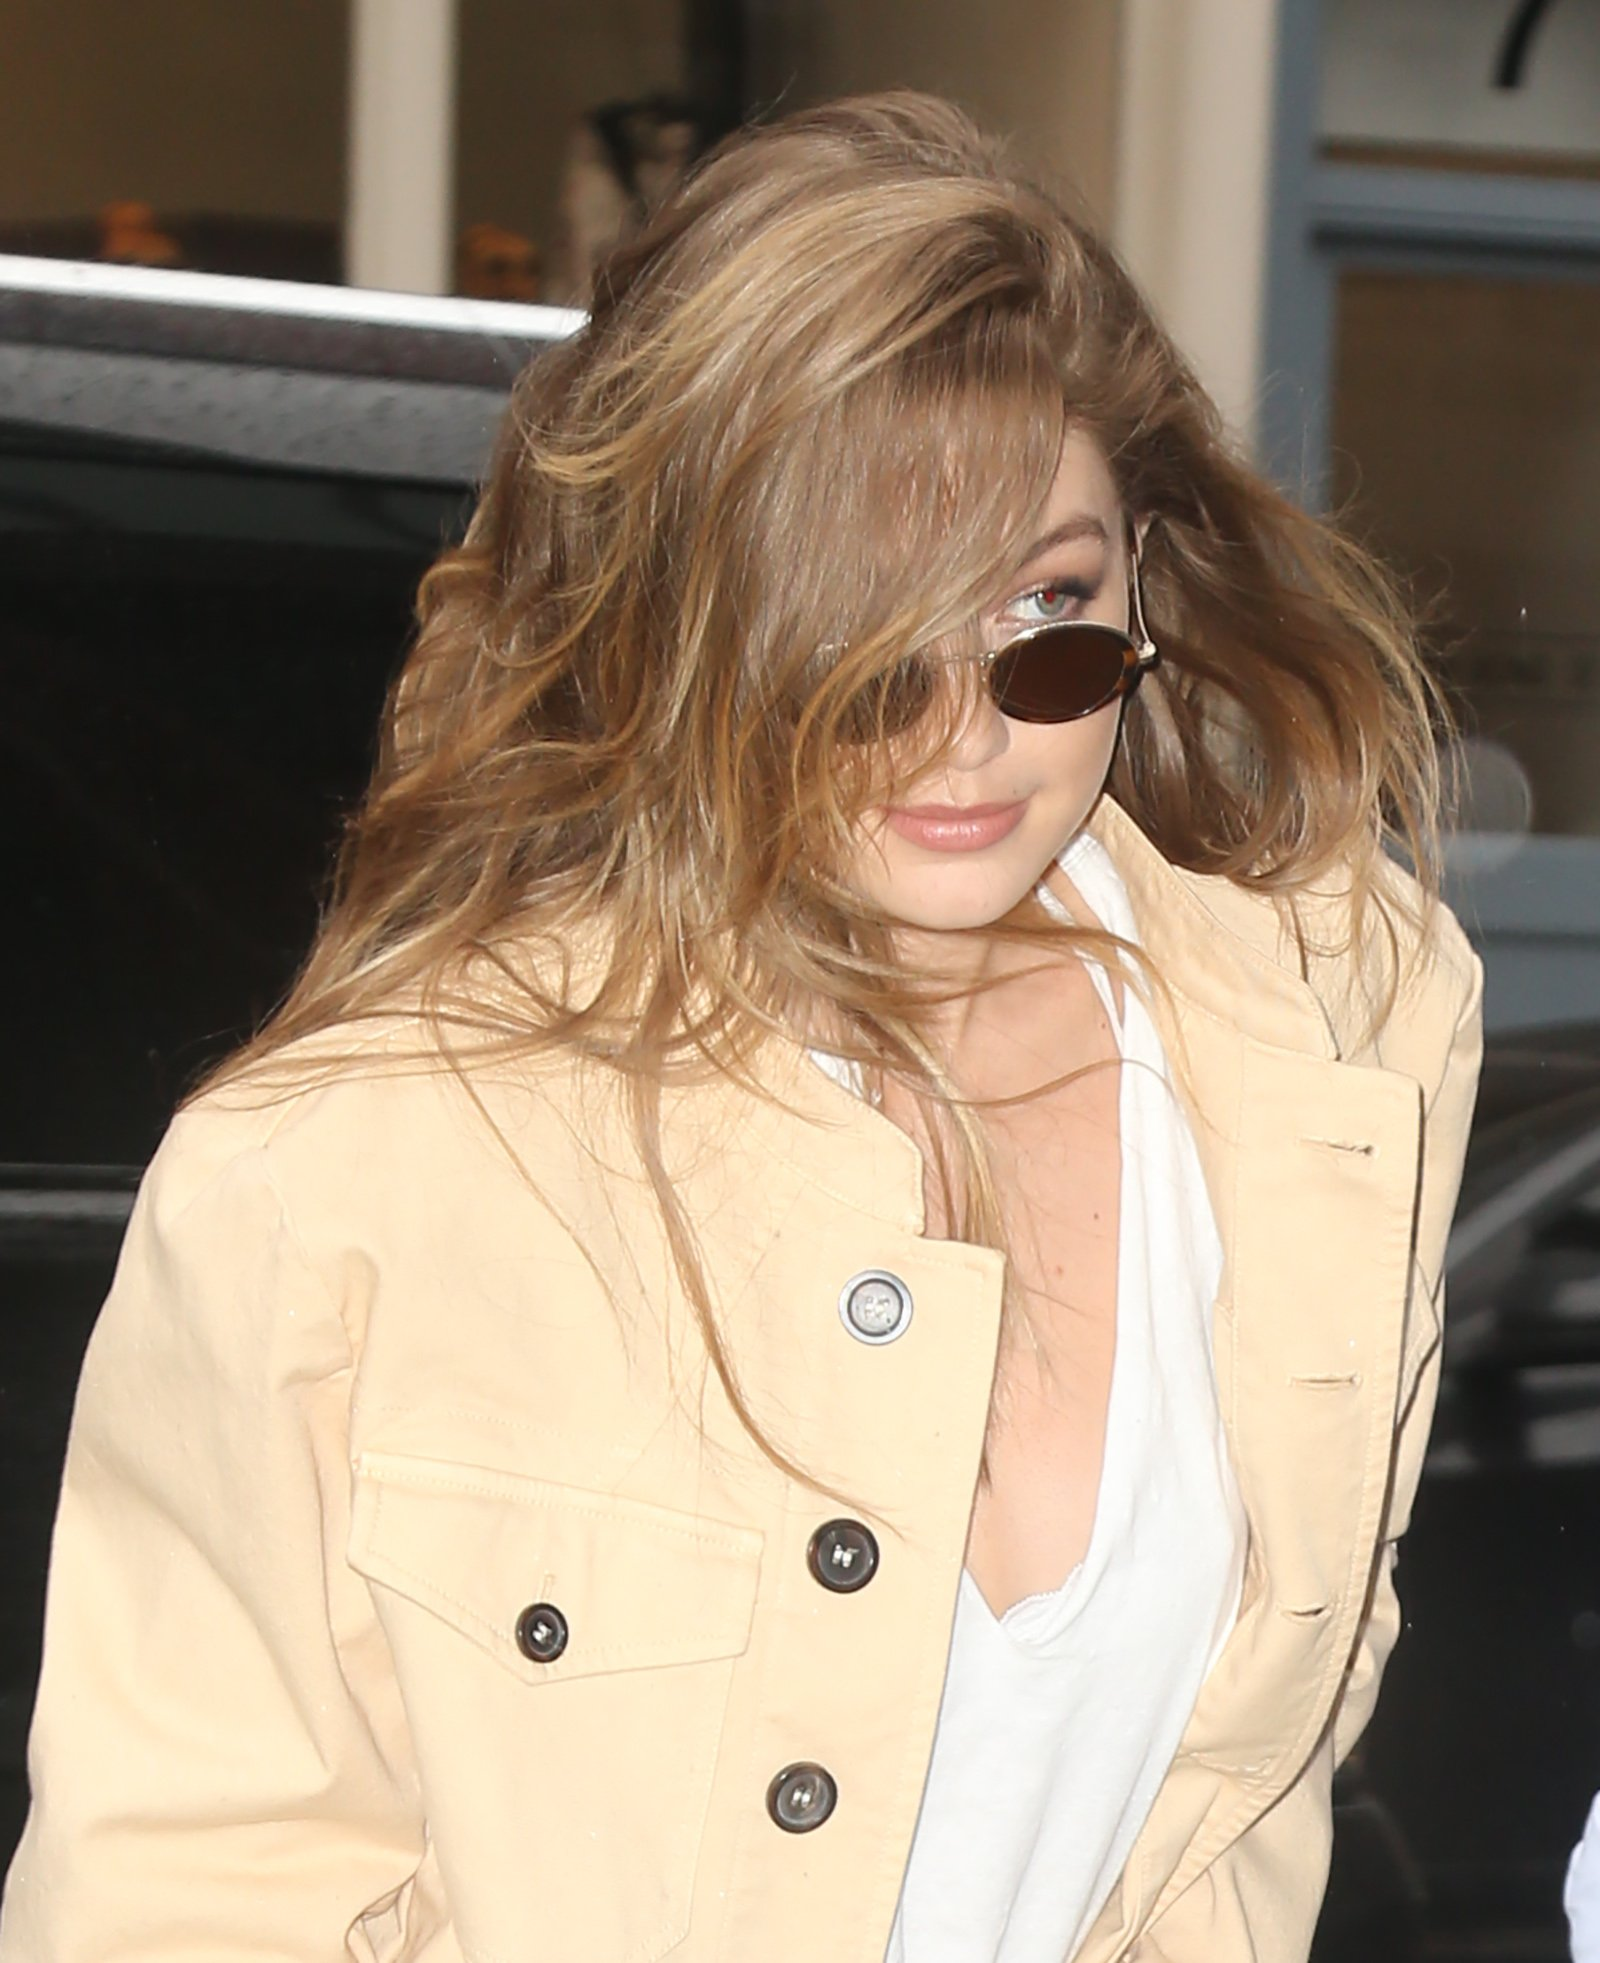 Gigi Hadid Source On Twitter April 30 Arriving At Inside Flats Khaky 37 Her Apartment In Nyc